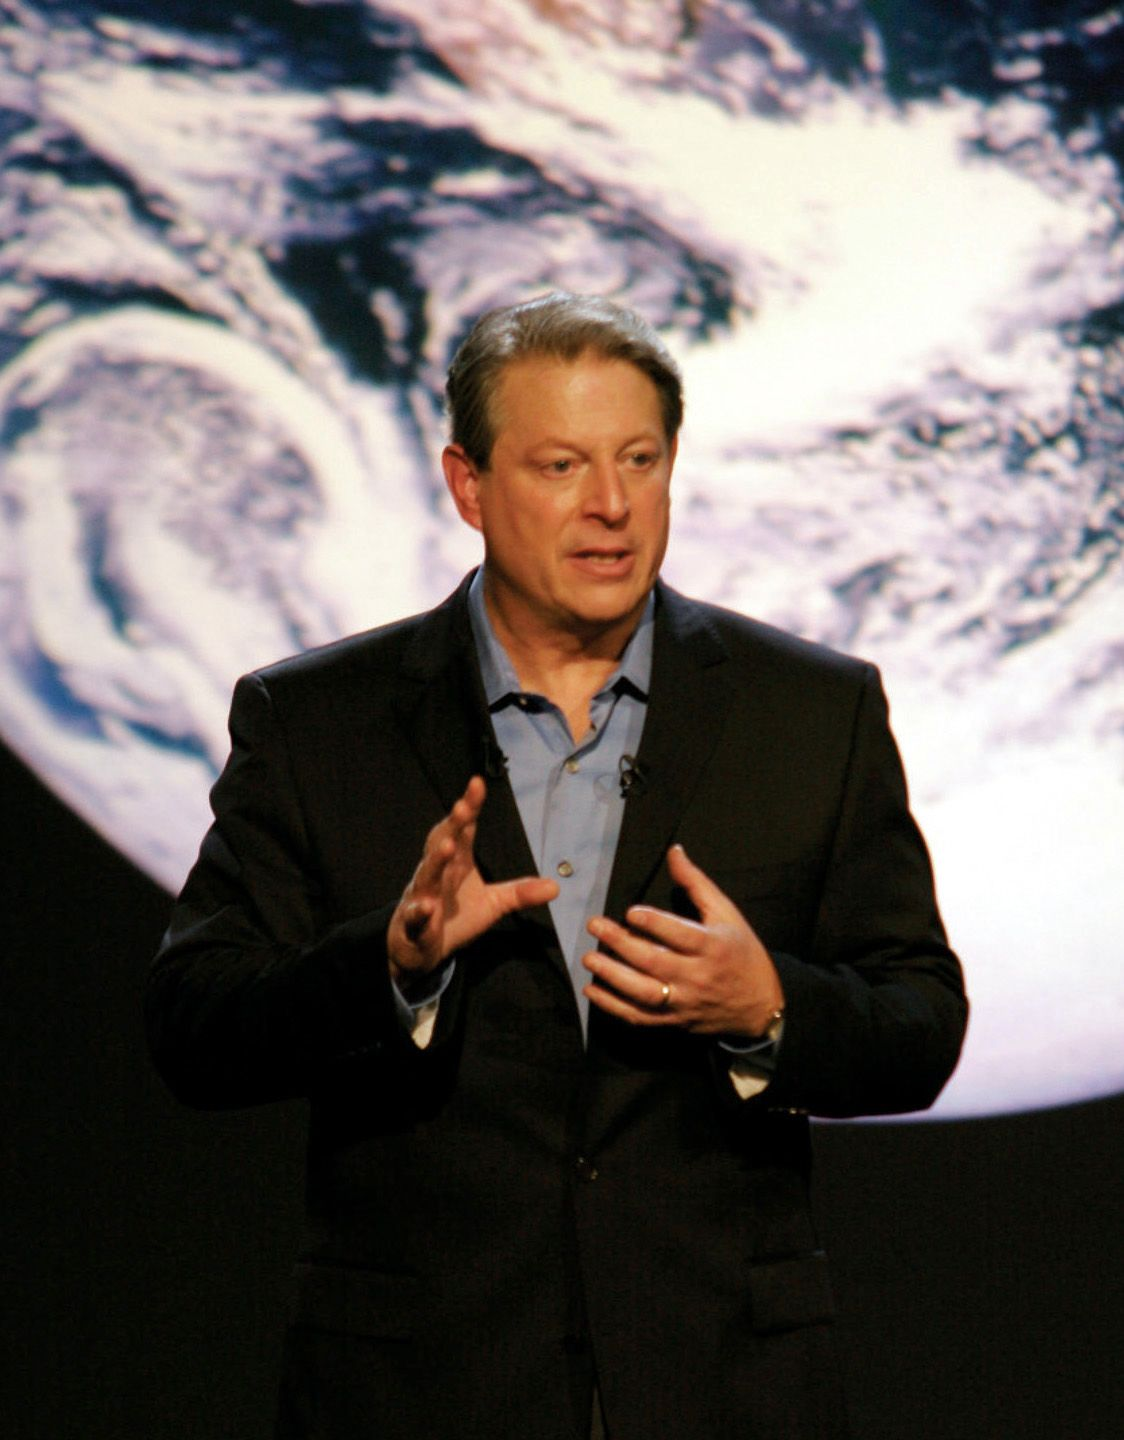 Sidenote to Irena Sendler: She was up for the Nobel Peace prize in 2007. She didn't win. This guy, Al Gore, won for a powerpoint on Global Warming. -____-